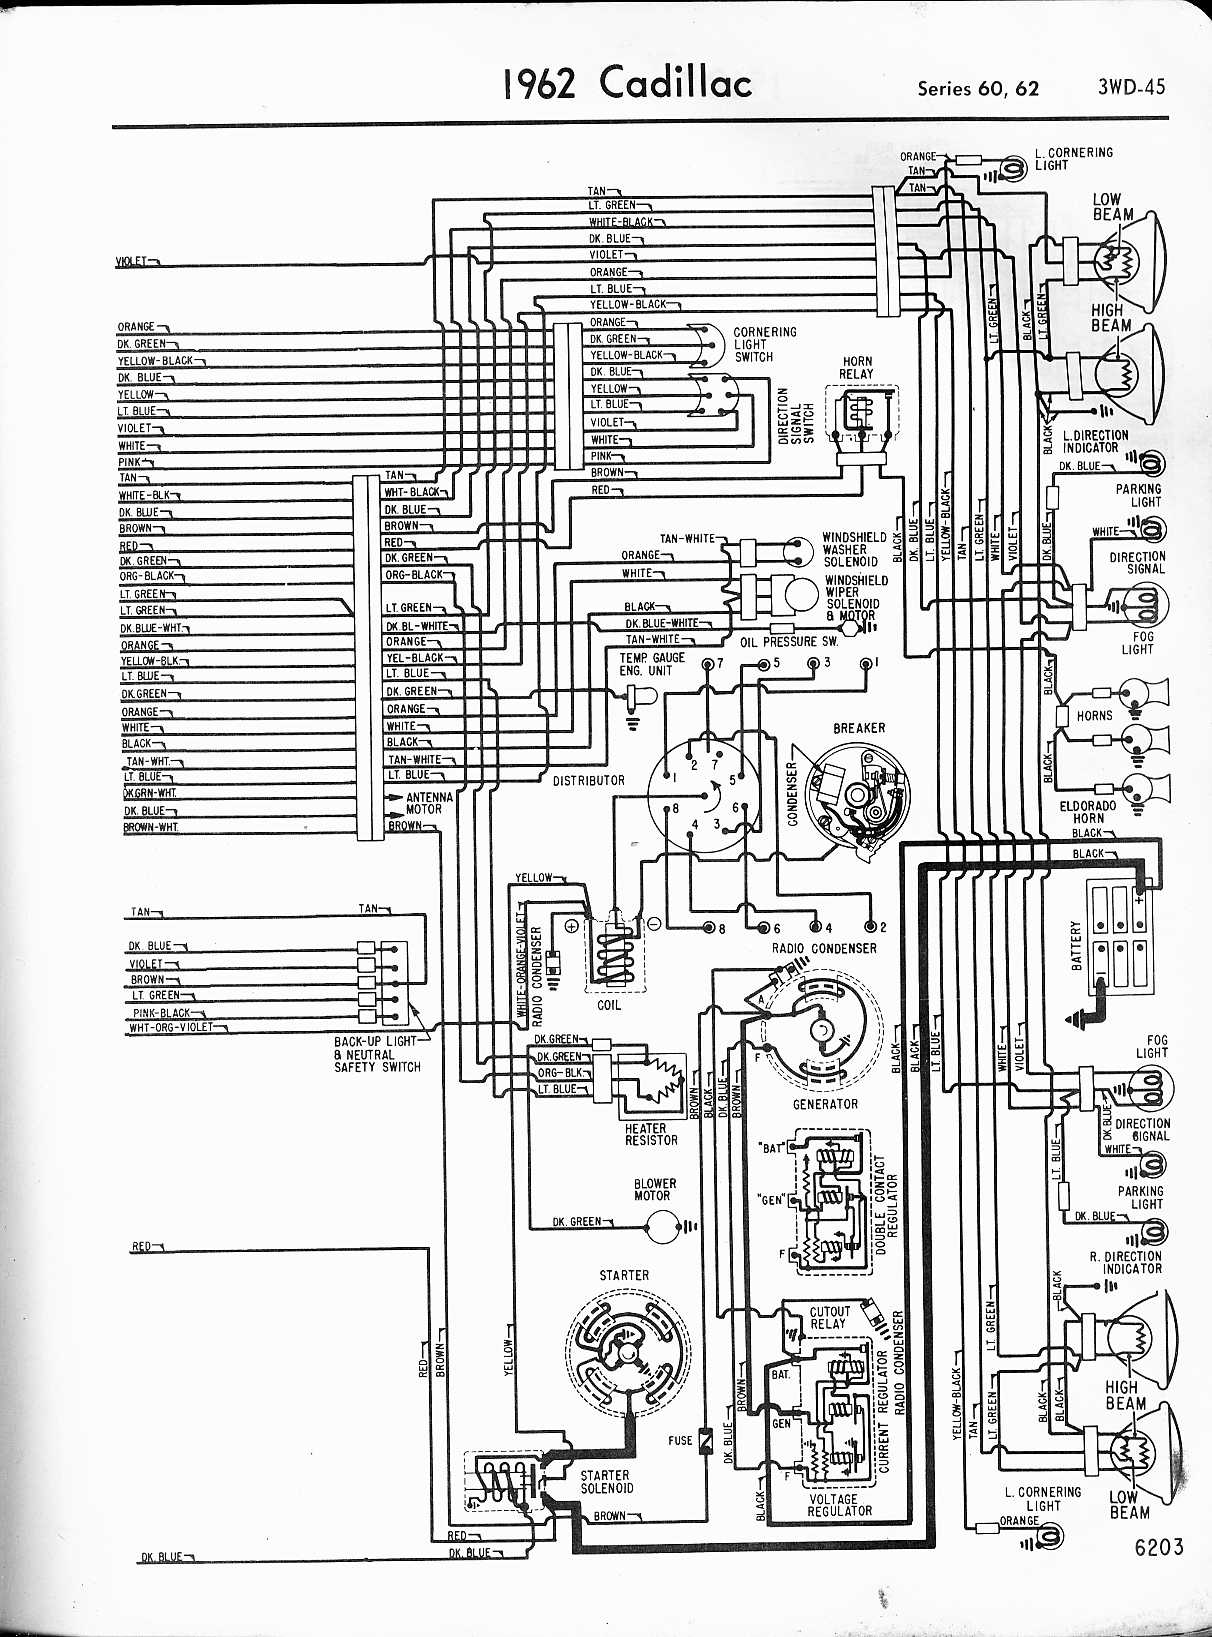 MWireCadi65_3WD 045 cadillac wiring diagrams 1957 1965 1959 cadillac 390 engine wiring diagram at mifinder.co